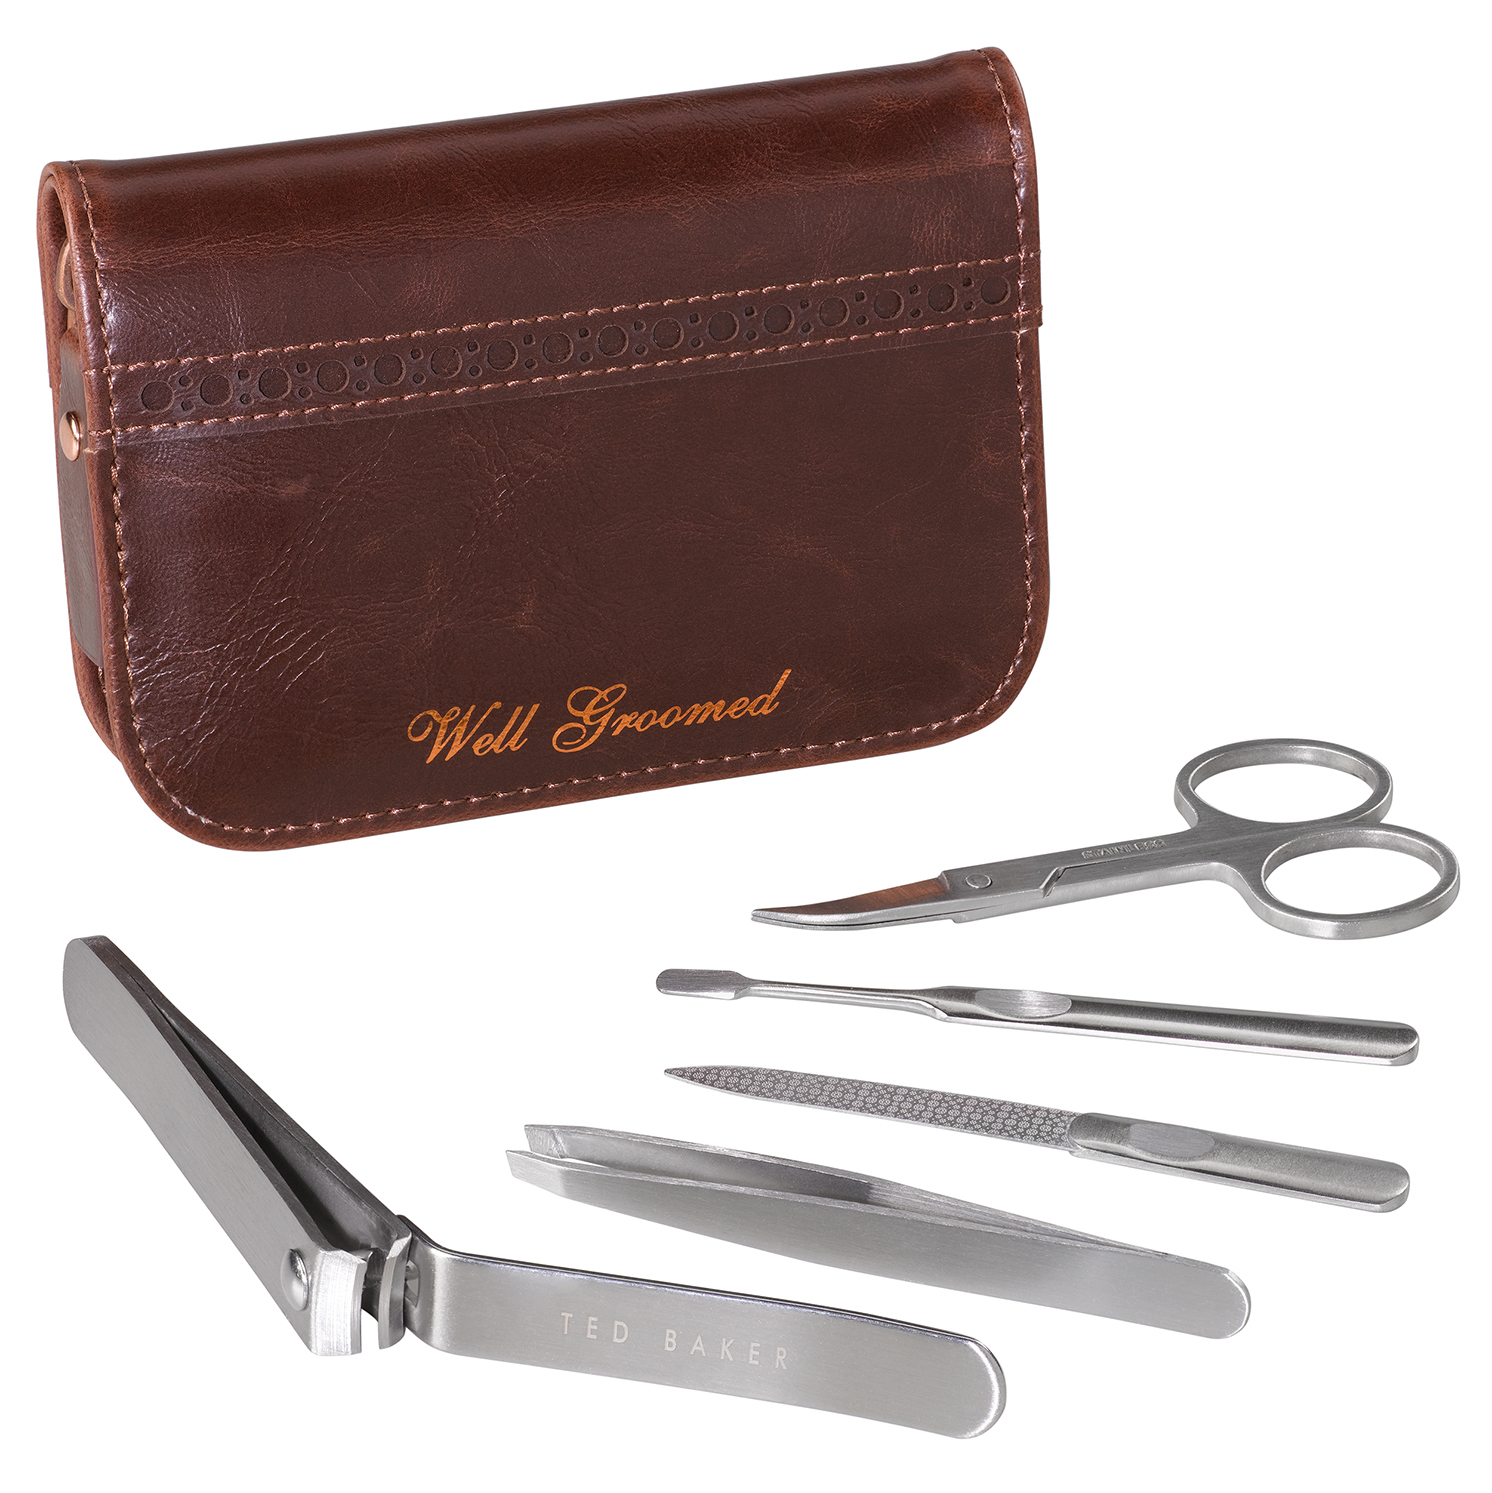 Ted Baker – Walnut Brown Manicure Set